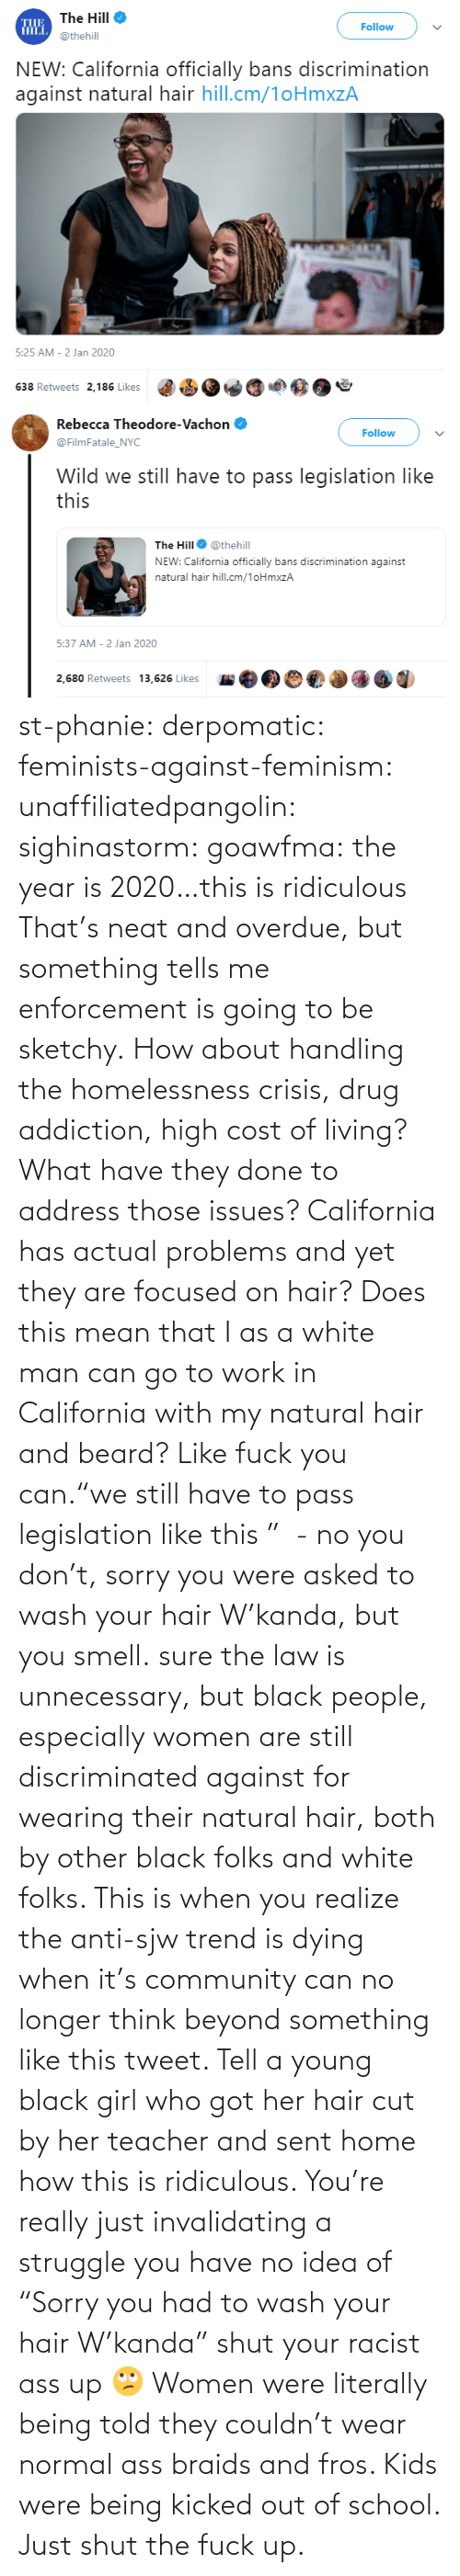 "her: st-phanie:  derpomatic:  feminists-against-feminism:  unaffiliatedpangolin:  sighinastorm:   goawfma: the year is 2020…this is ridiculous That's neat and overdue, but something tells me enforcement is going to be sketchy.    How about handling the homelessness crisis, drug addiction, high cost of living? What have they done to address those issues? California has actual problems and yet they are focused on hair?  Does this mean that I as a white man can go to work in California with my natural hair and beard?  Like fuck you can.""we still have to pass legislation like this ""  - no you don't, sorry you were asked to wash your hair W'kanda, but you smell.    sure the law is unnecessary, but black people, especially women are still discriminated against for wearing their natural hair, both by other black folks and white folks. This is when you realize the anti-sjw trend is dying when it's community can no longer think beyond something like this tweet. Tell a young black girl who got her hair cut by her teacher and sent home how this is ridiculous. You're really just invalidating a struggle you have no idea of   ""Sorry you had to wash your hair W'kanda"" shut your racist ass up 🙄 Women were literally being told they couldn't wear normal ass braids and fros. Kids were being kicked out of school. Just shut the fuck up."